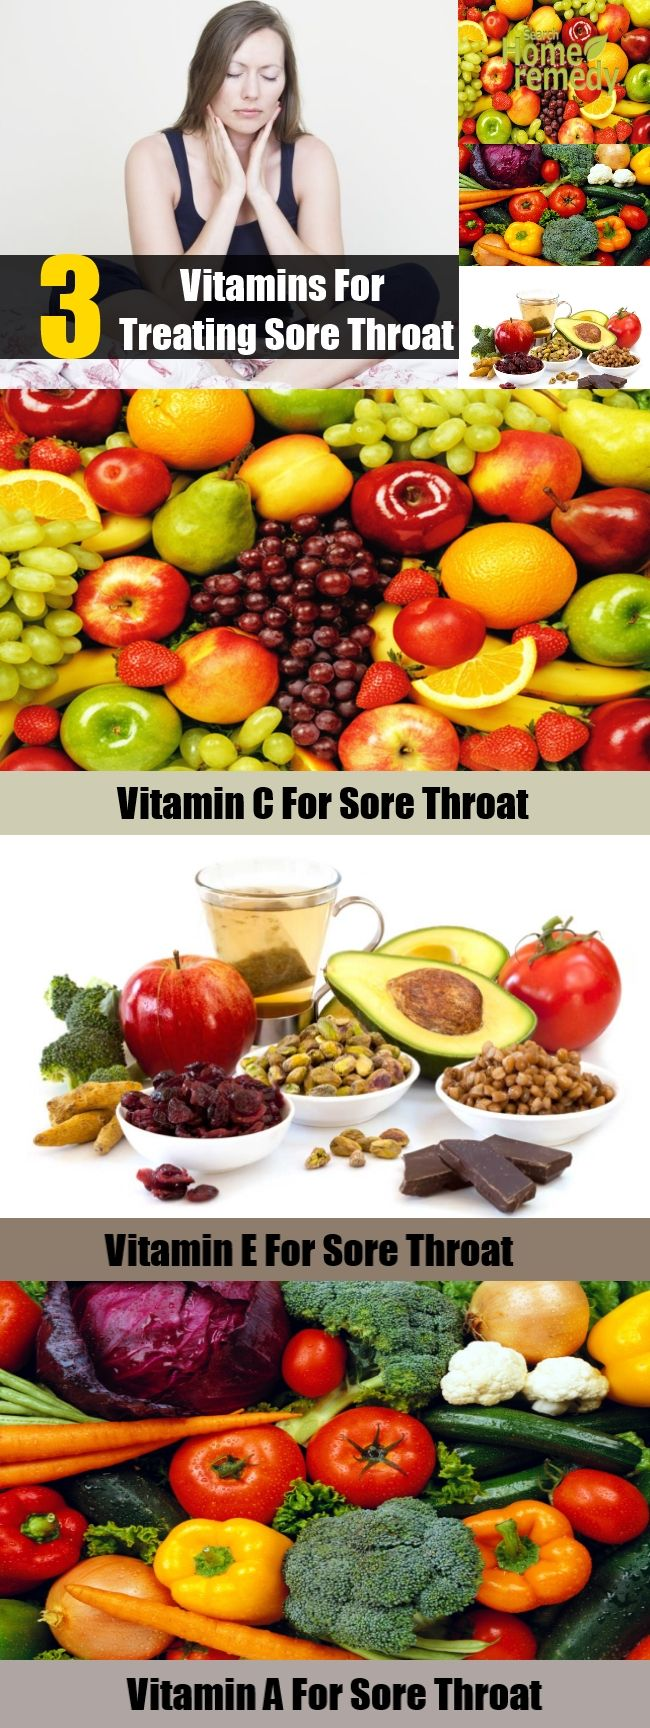 3 Vitamins for Treating Sore Throat